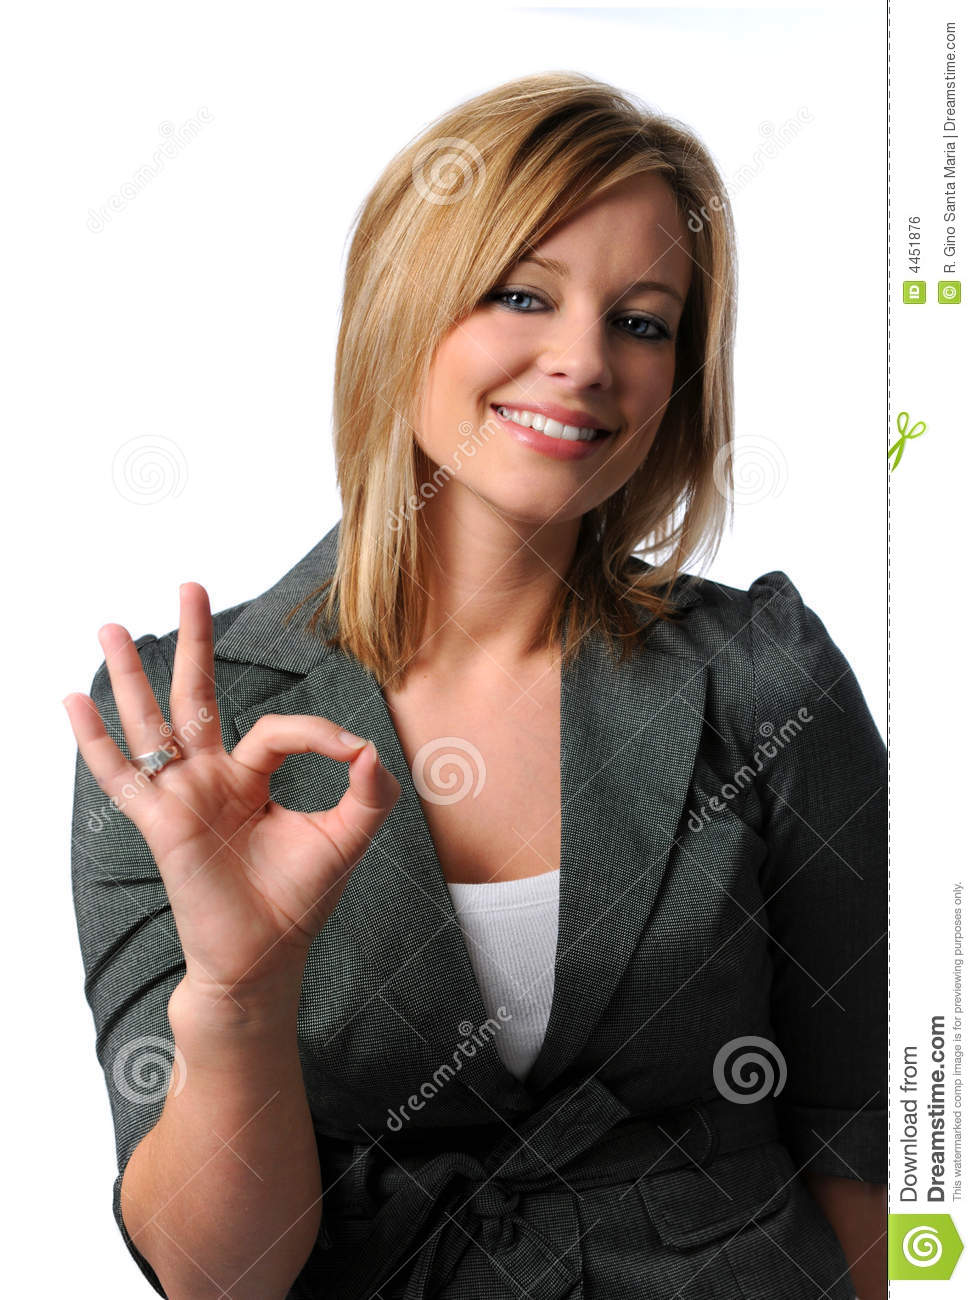 Cute girl giving OK sign stock photo. Image of gesturing